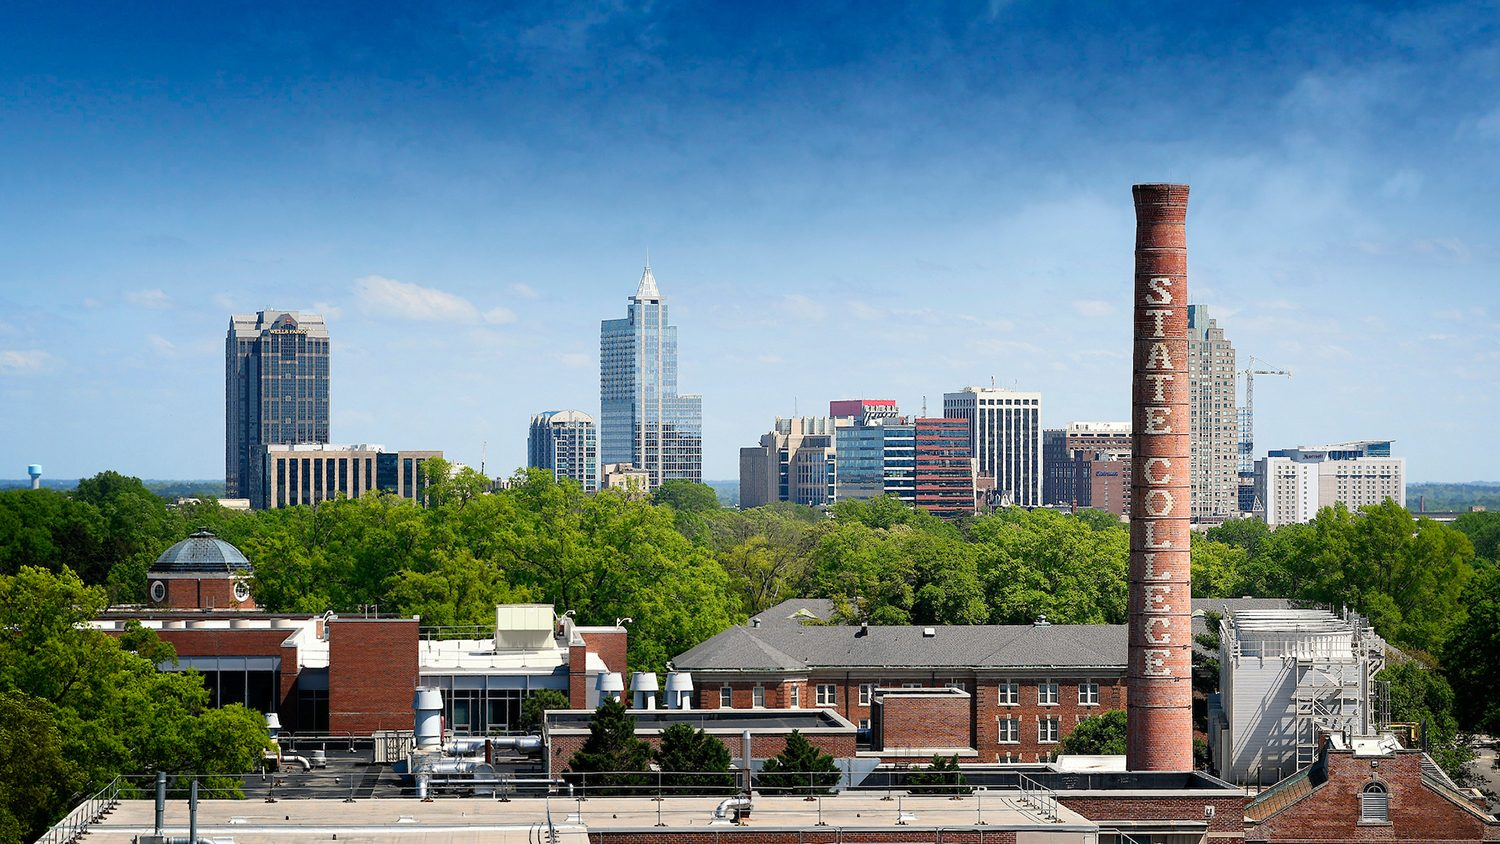 skyline of raleigh with smoke stack